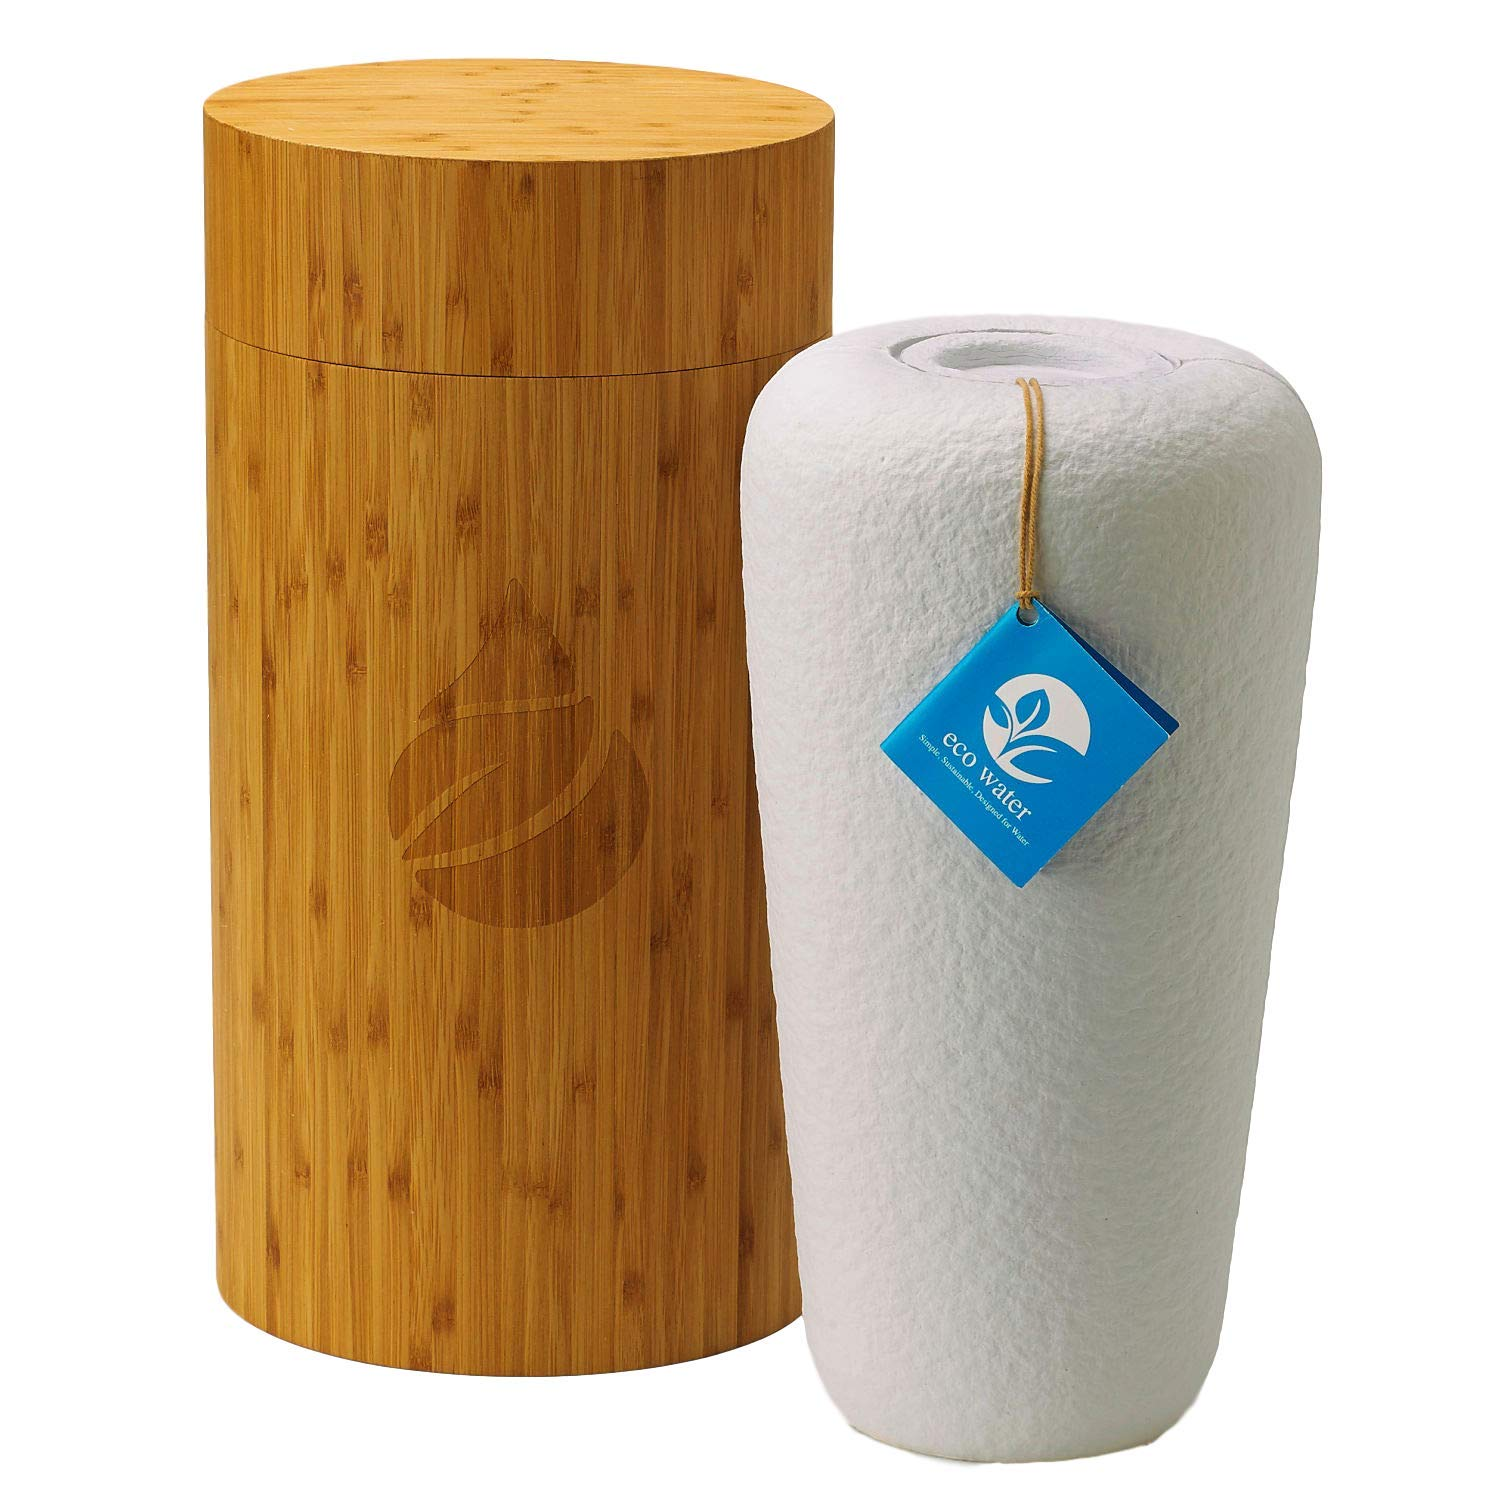 Eco Water Urn: Biodegradable Urn for Water Burial, Burial at Sea by Element Urns